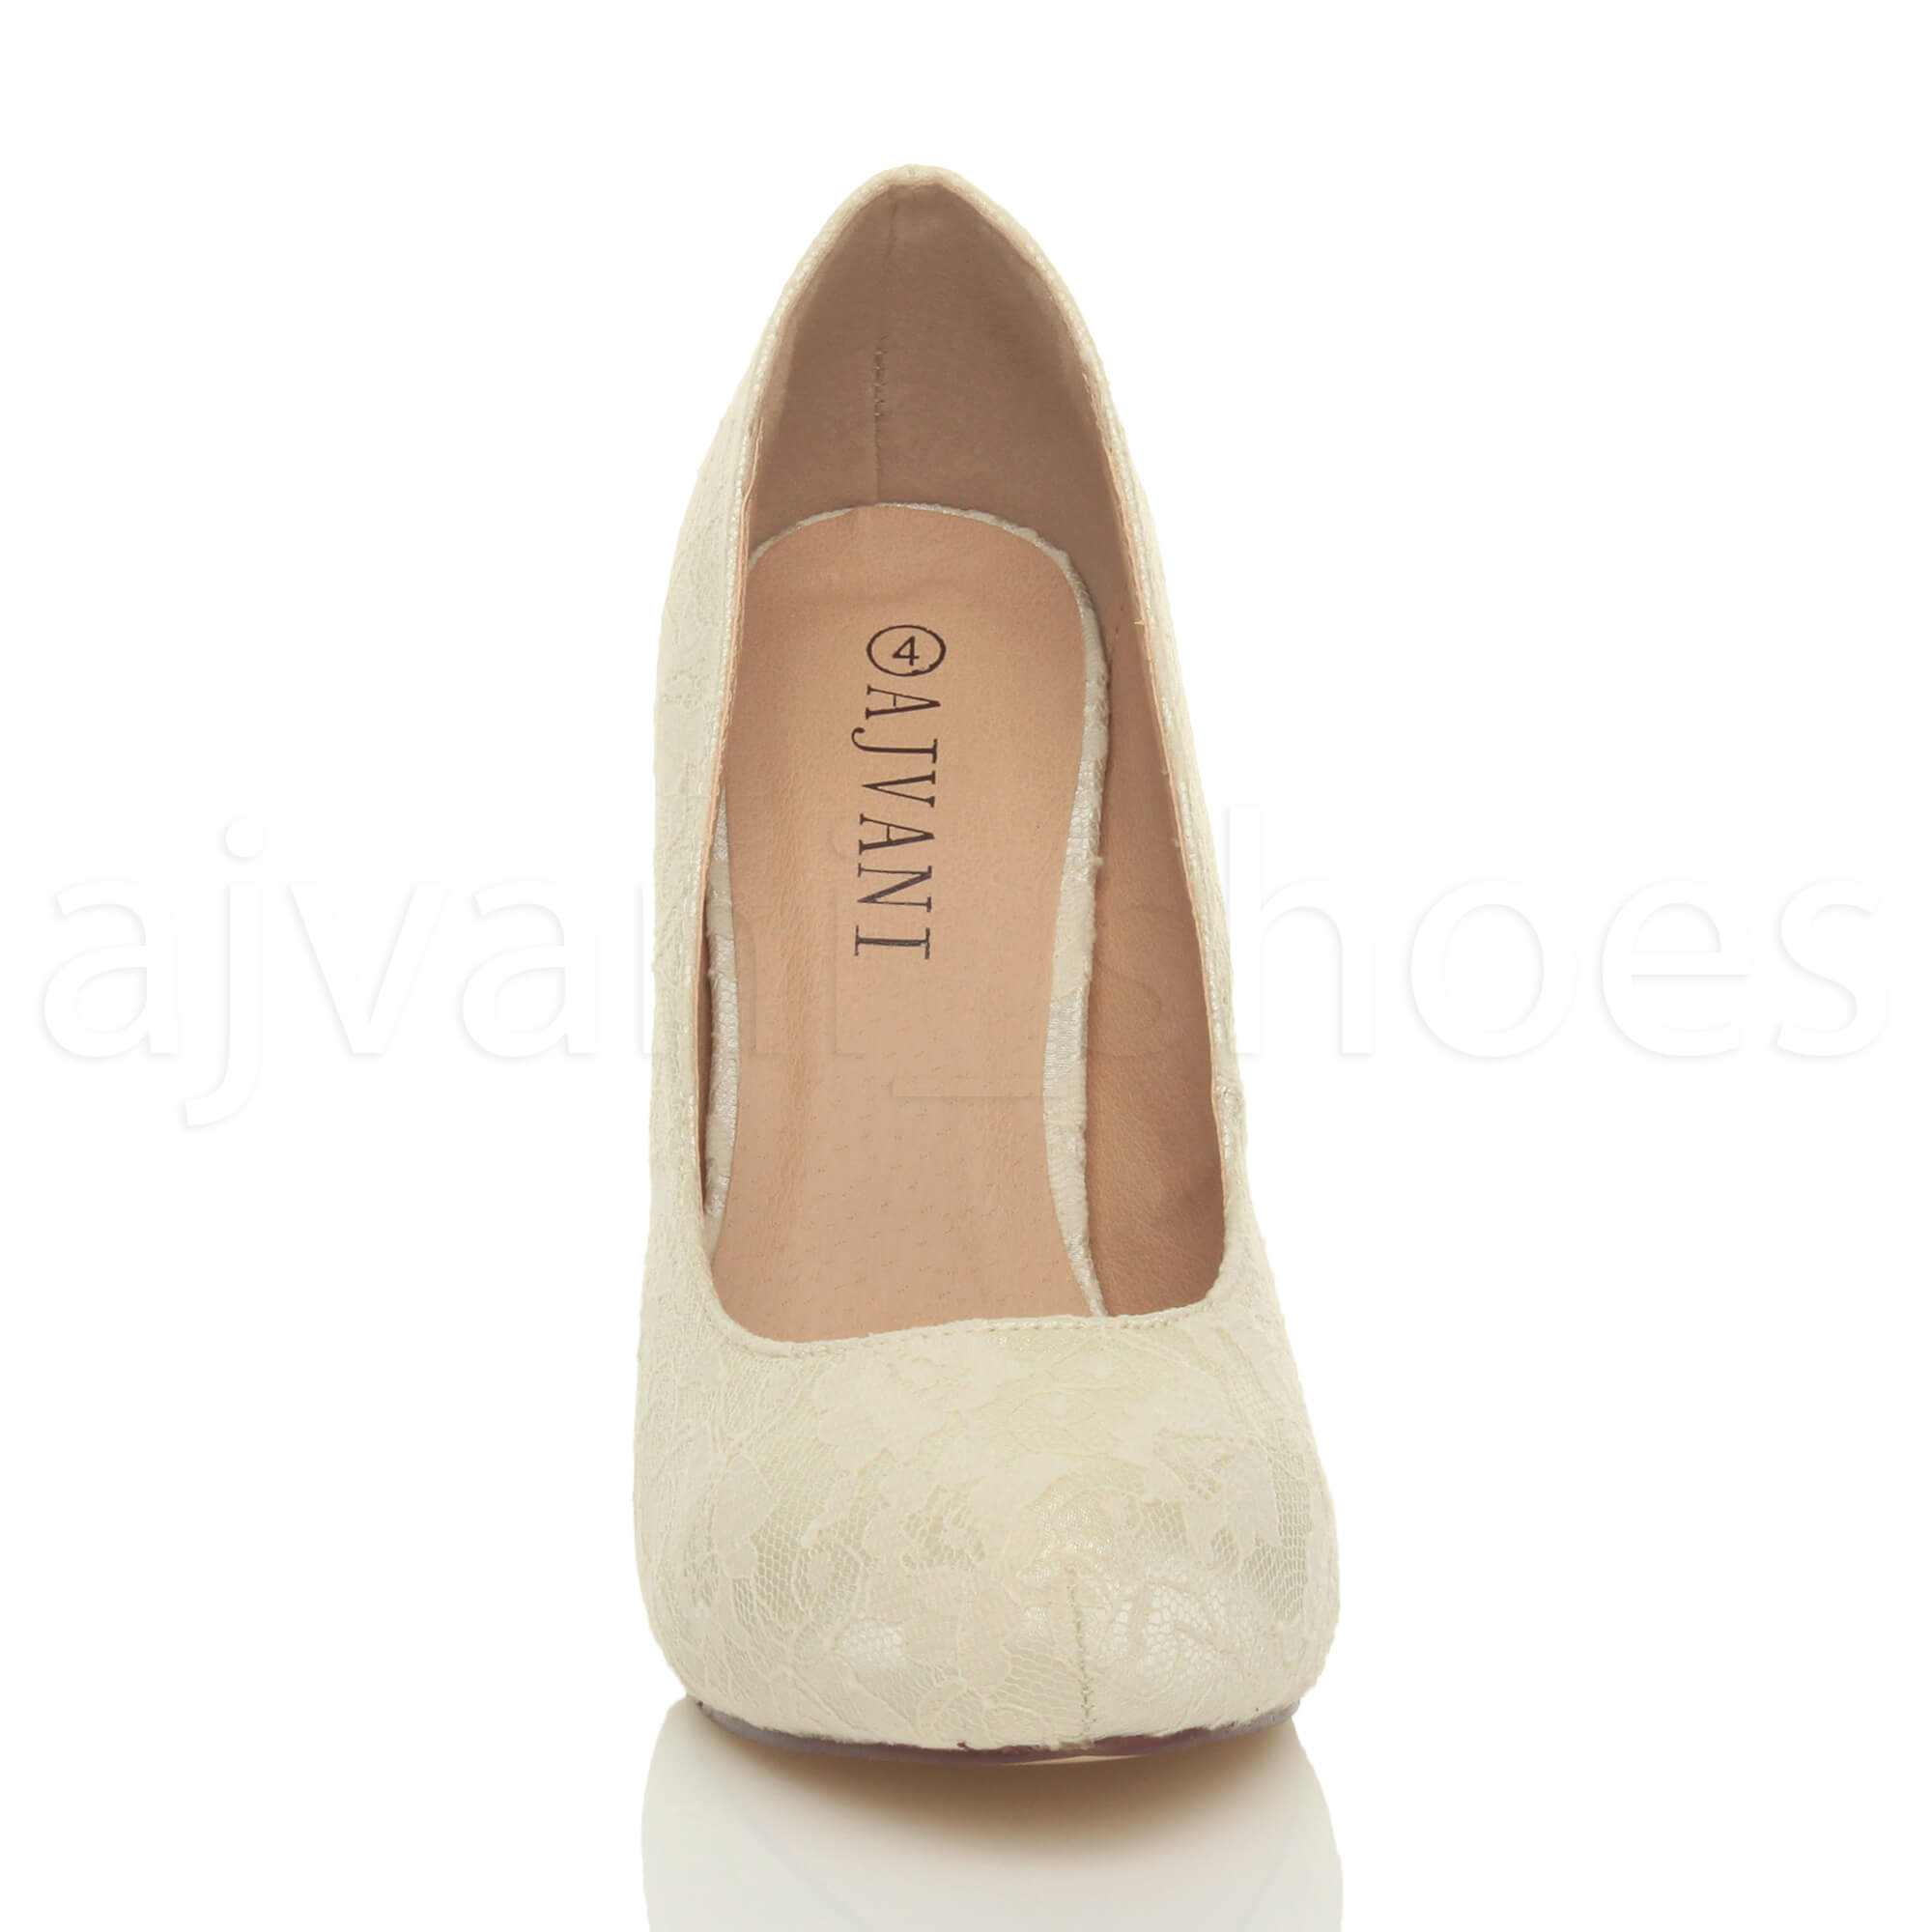 WOMENS-LADIES-HIGH-HEEL-CONCEALED-PLATFORM-COURT-SHOES-PARTY-PROM-PUMPS-SIZE thumbnail 20